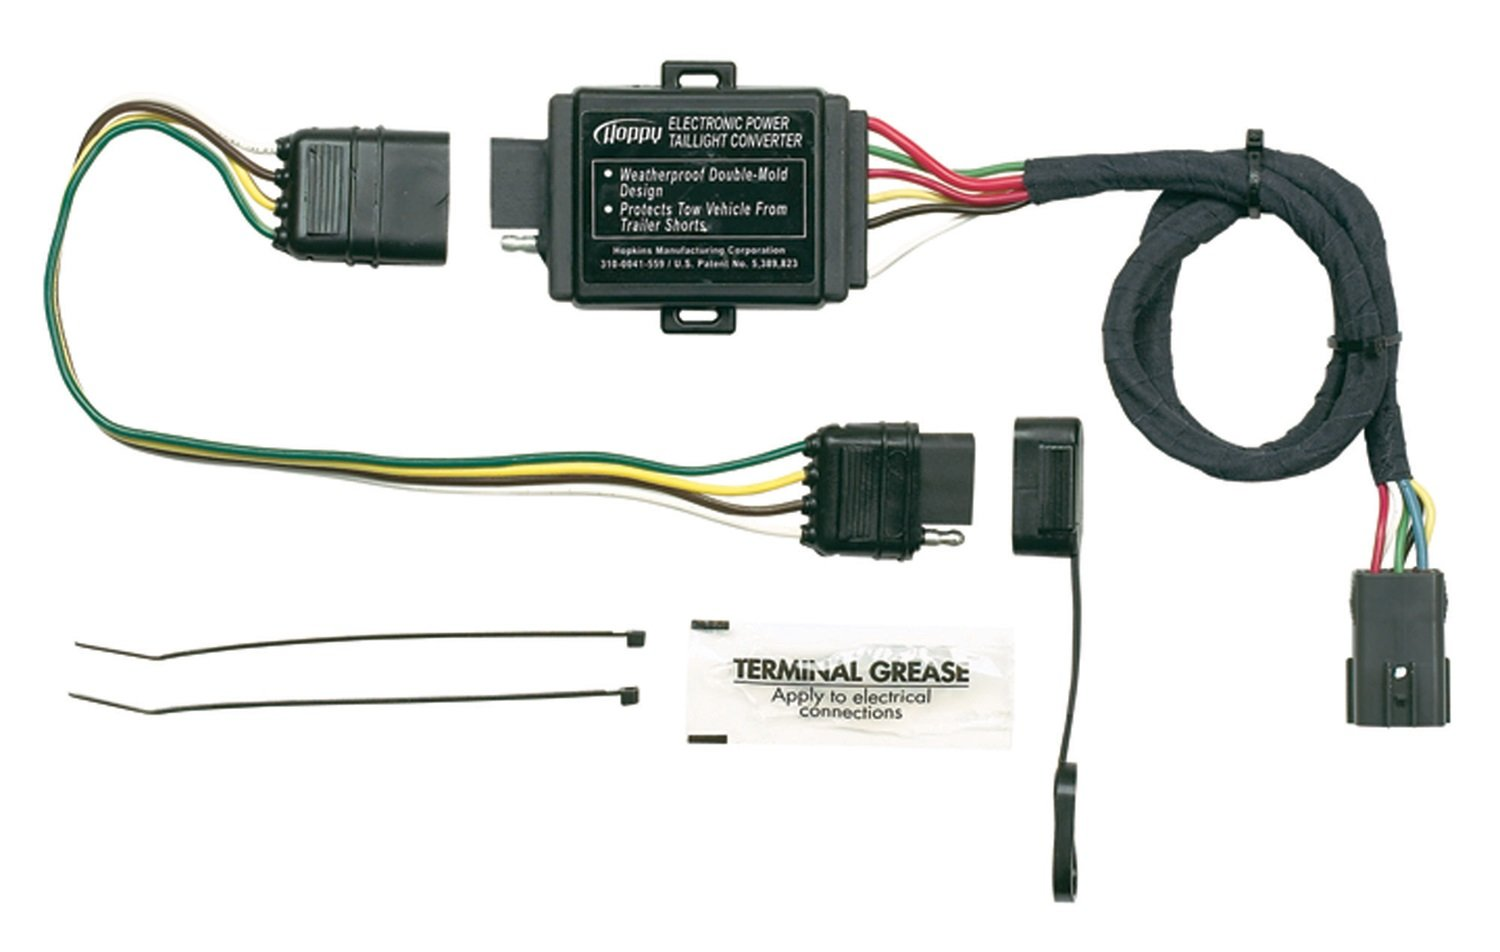 61dKvjPegbL._SL1500_ amazon com hopkins 11143875 plug in simple vehicle to trailer universal trailer wiring harness at alyssarenee.co